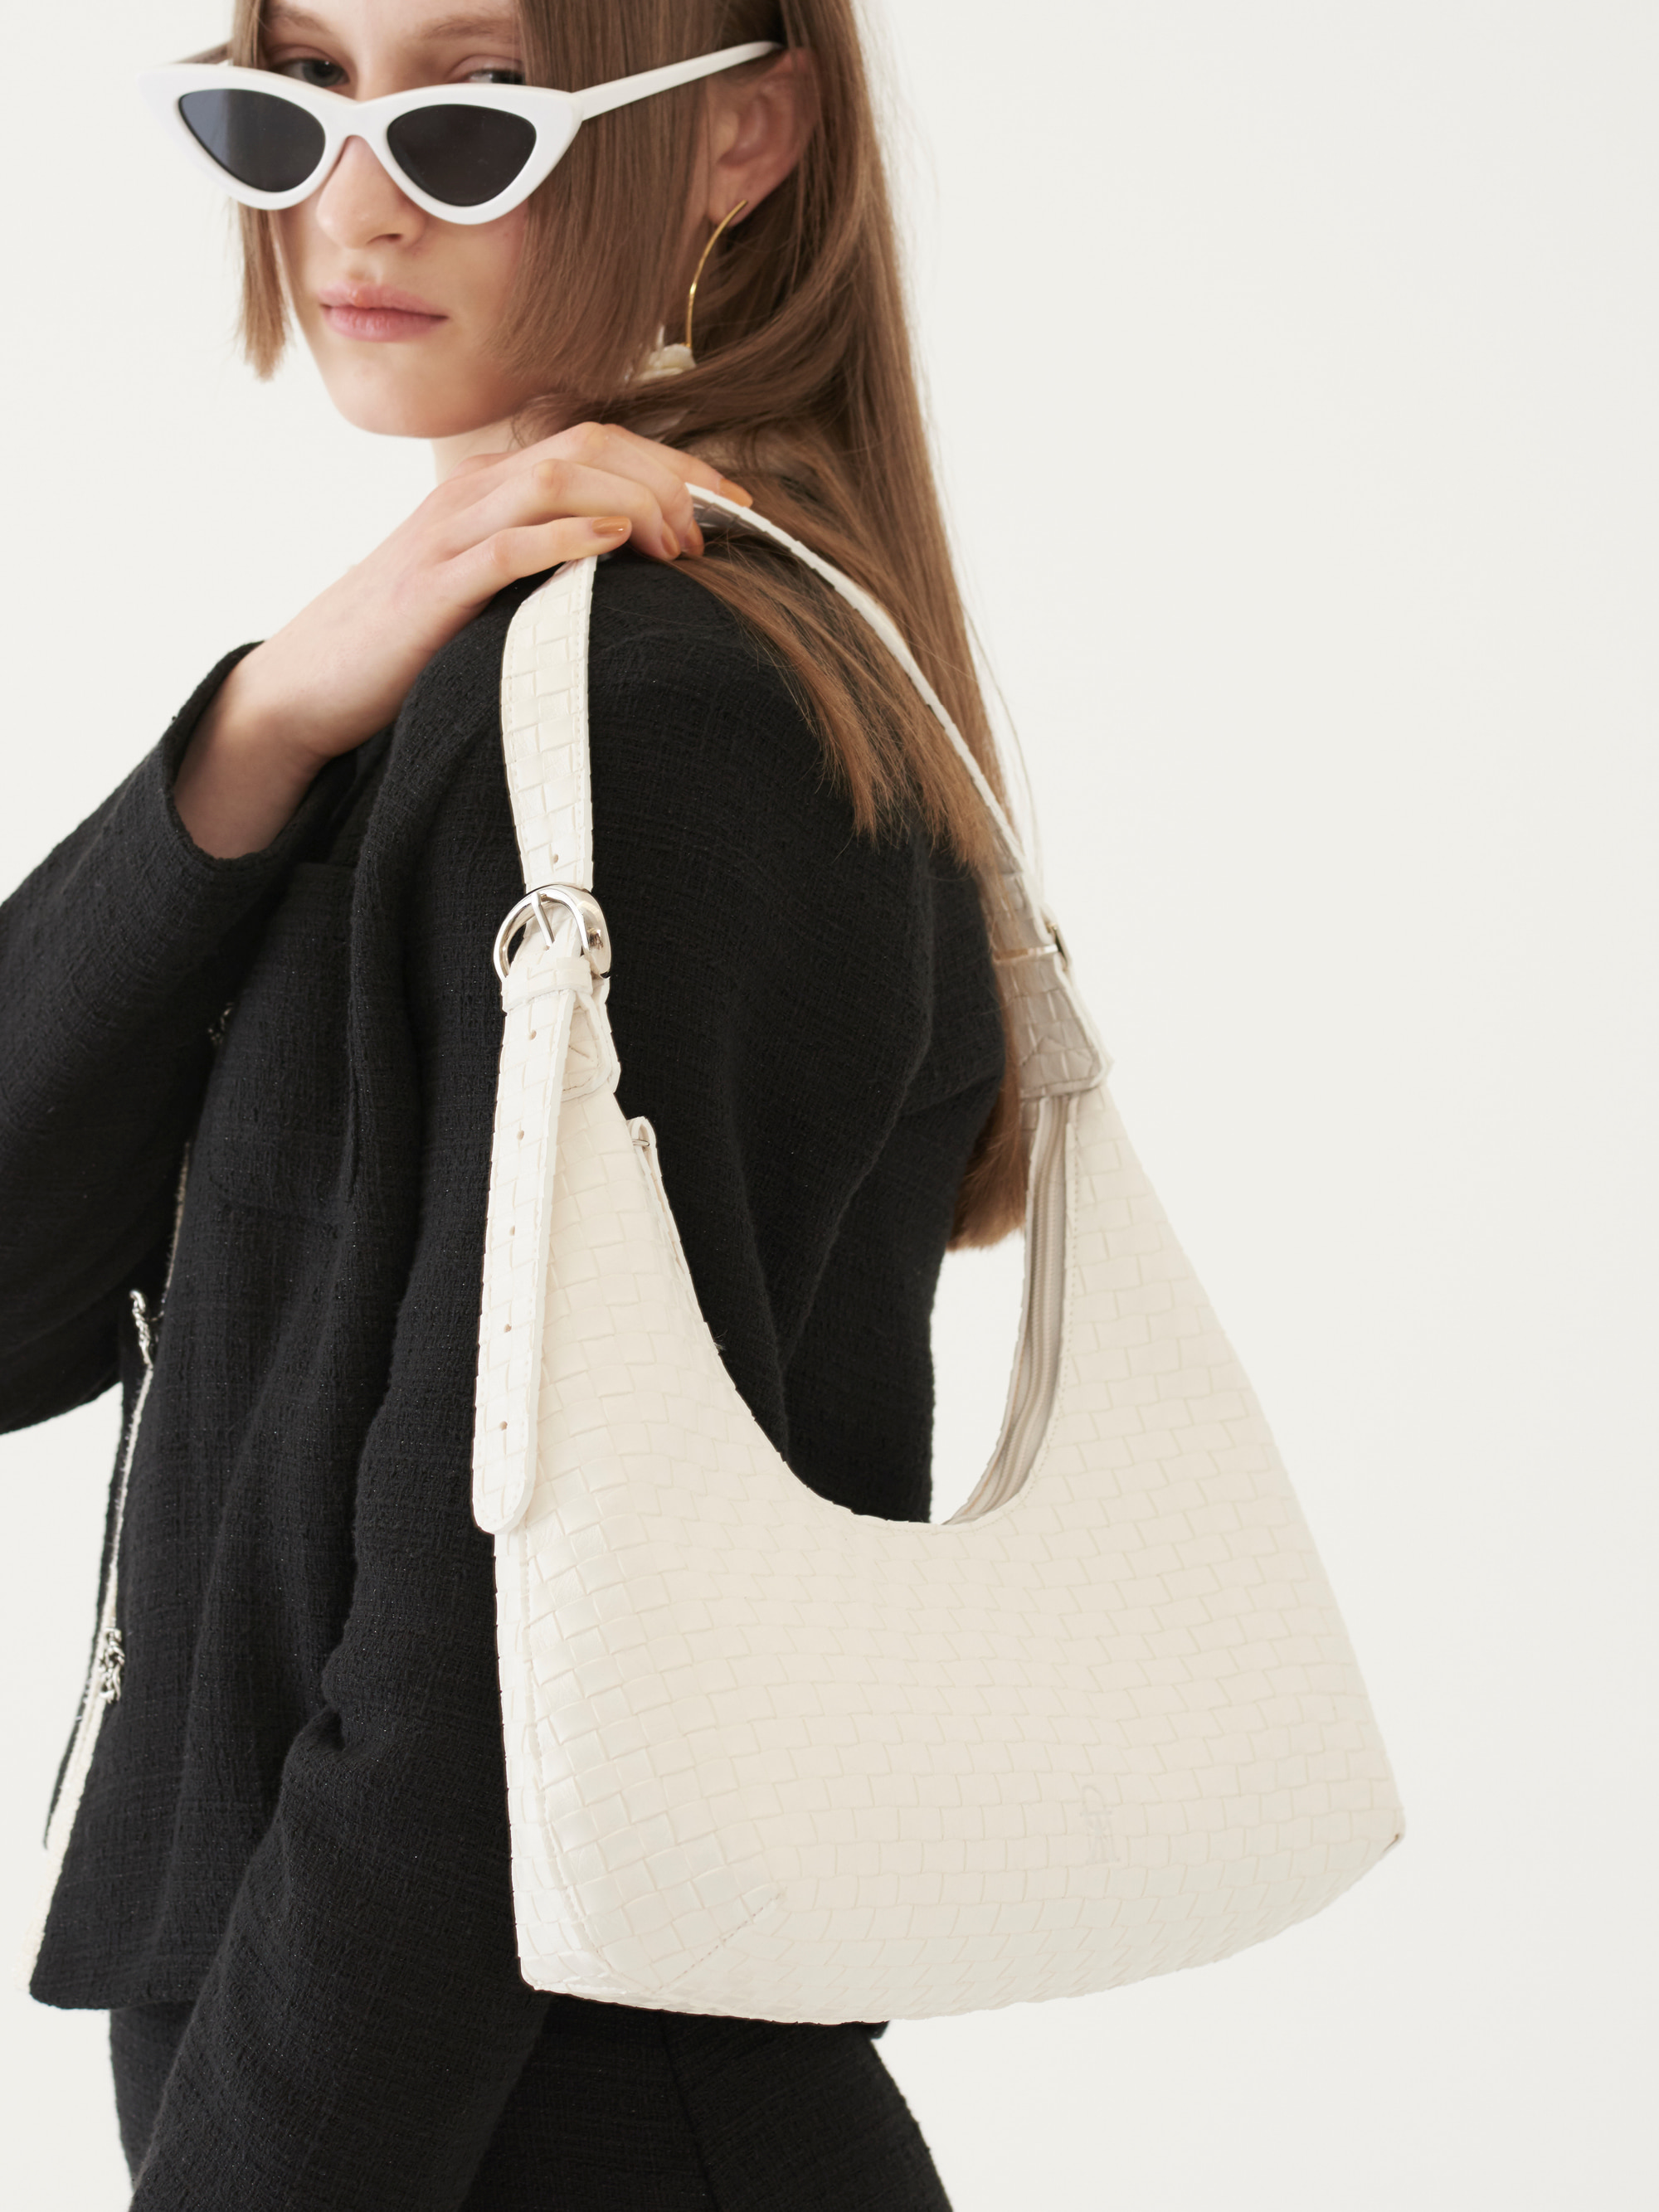 [Ship Date: 5/7] CURVED SHAPE BAG (IVORY)